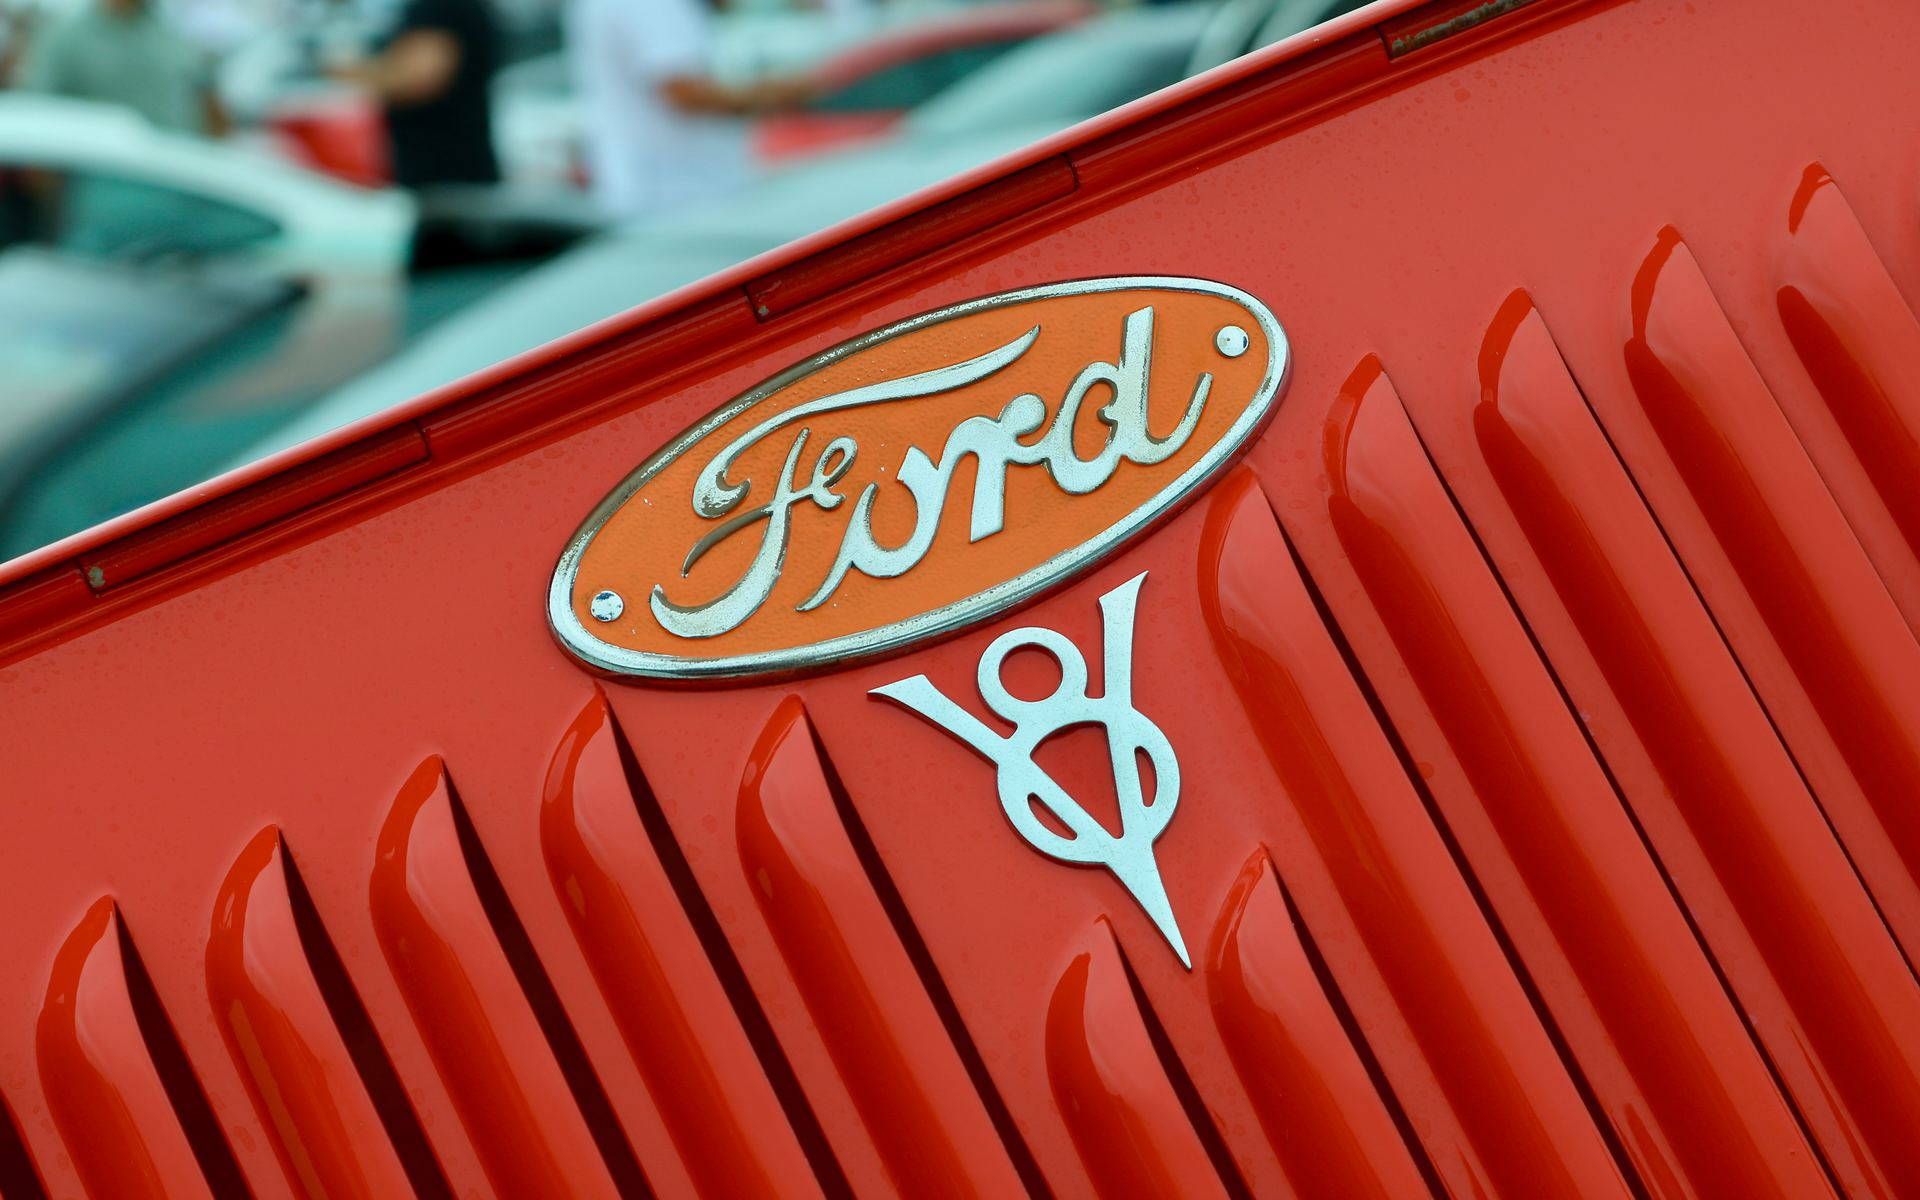 Ford, an early adopter of ASC 606, disclosed its disaggregation of revenue in its financials and received SEC feedback.